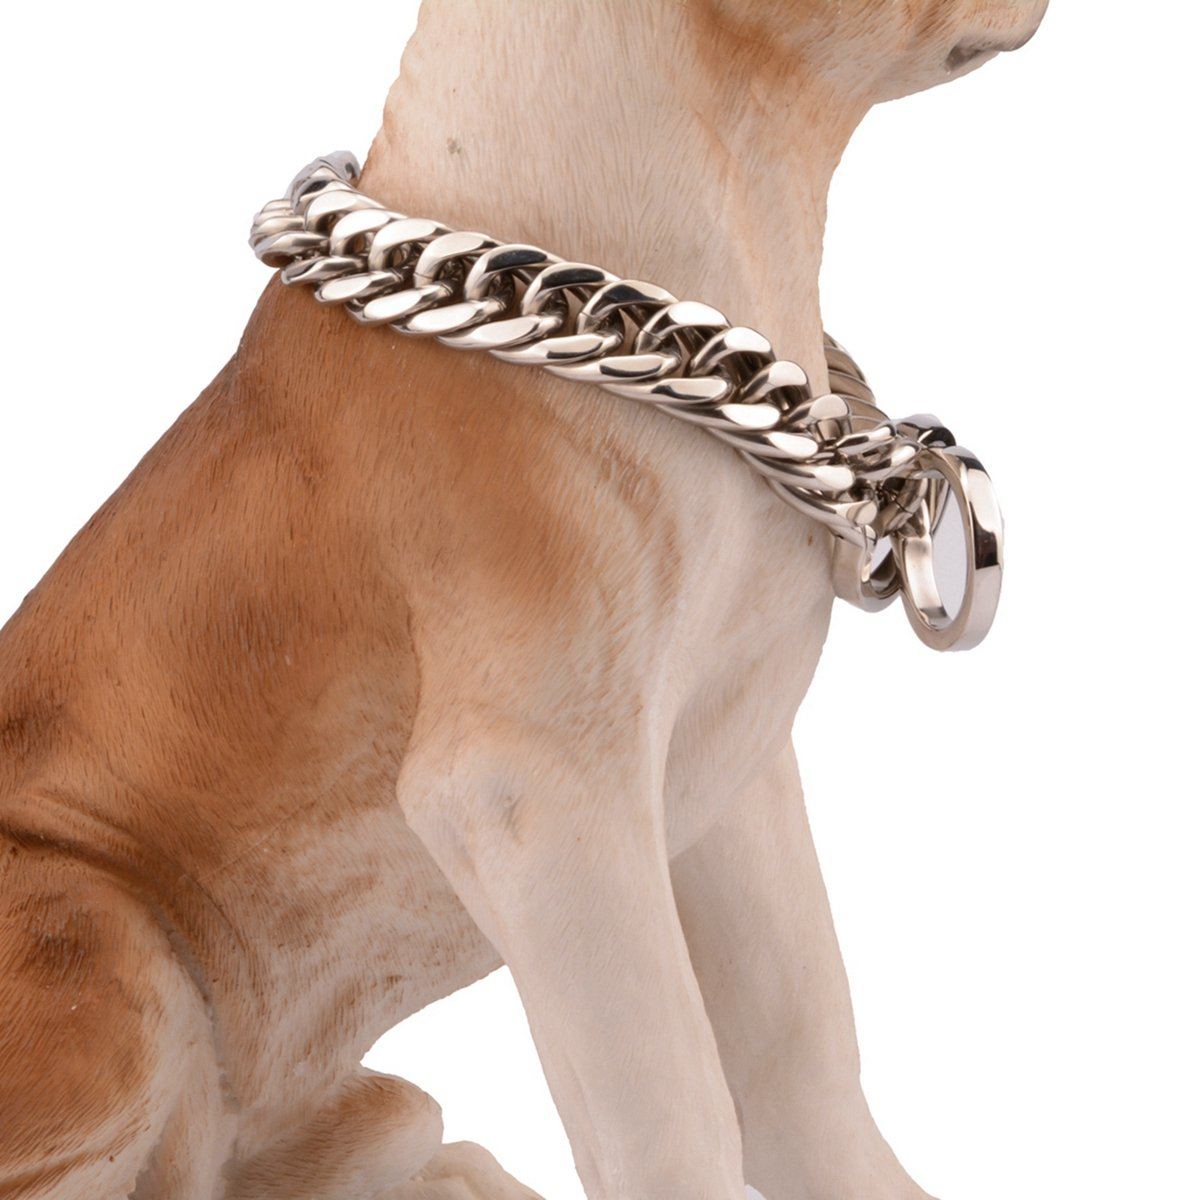 24inch recommend dog's neck 20inch Bestss Jewelry 16 18mm Silver Tone Double Curb Chain Stainless Steel Choker Strong Dog Pet Collar,14-36 Inches (18mm Wide, 24inch Recommend Dog's Neck 20inch)